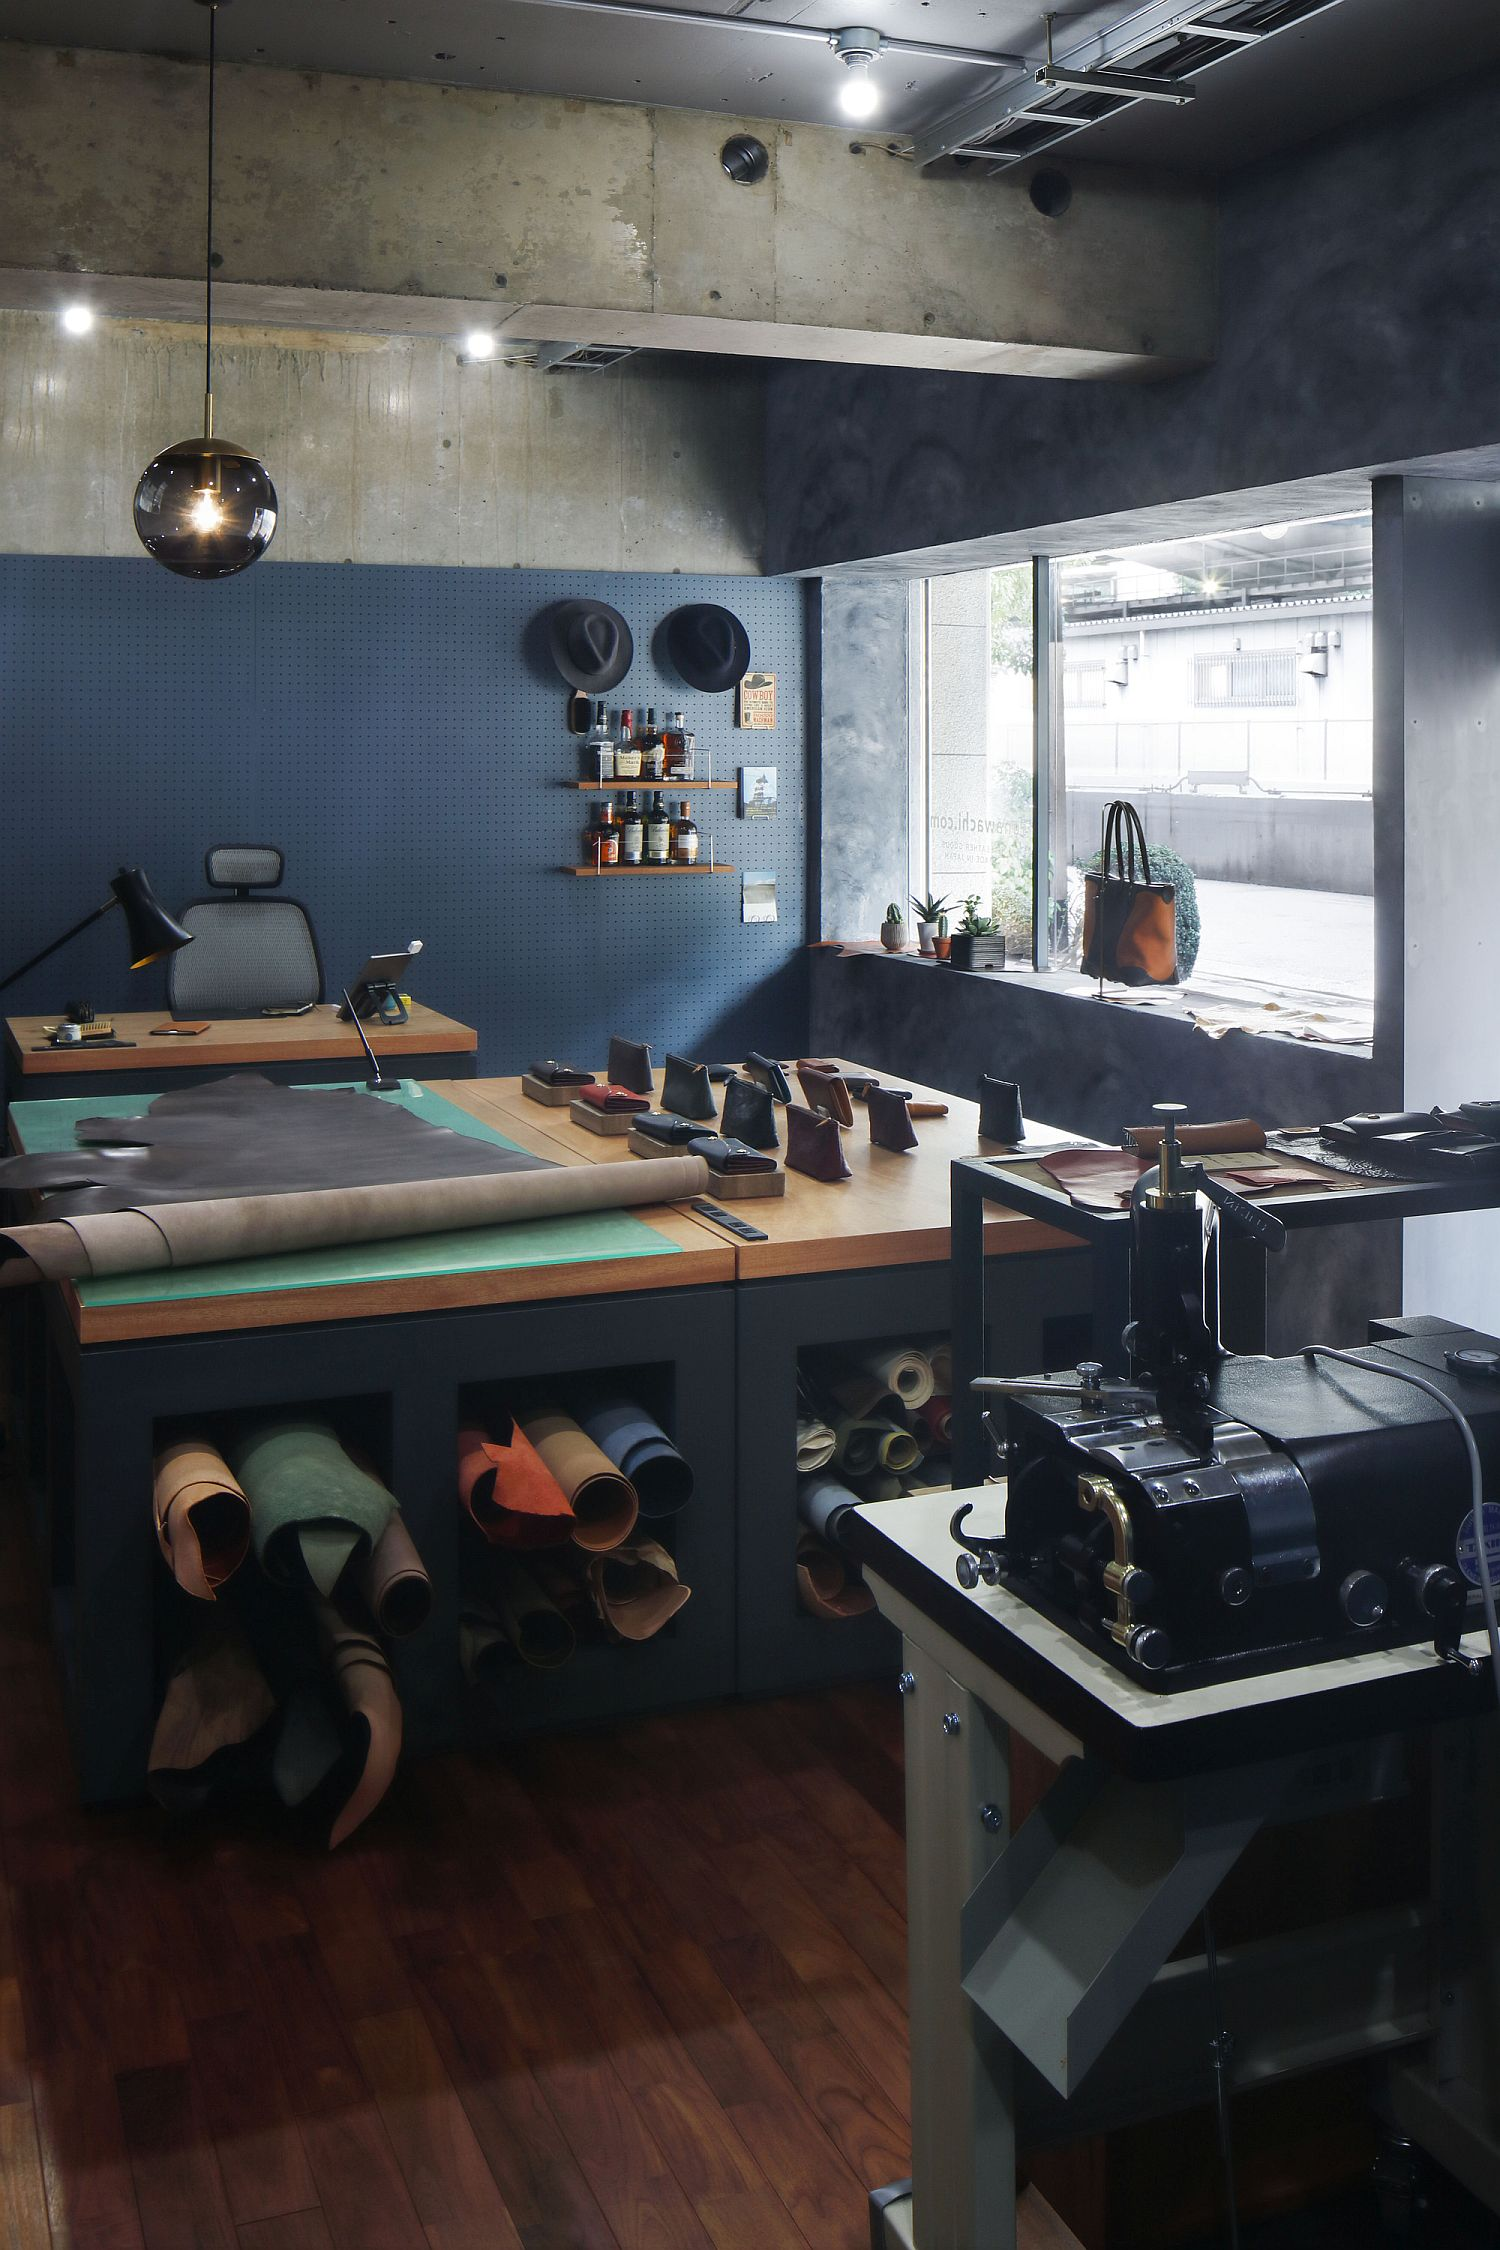 Interior of the leather shop combines modern blue finishes with wood and exposed concrete